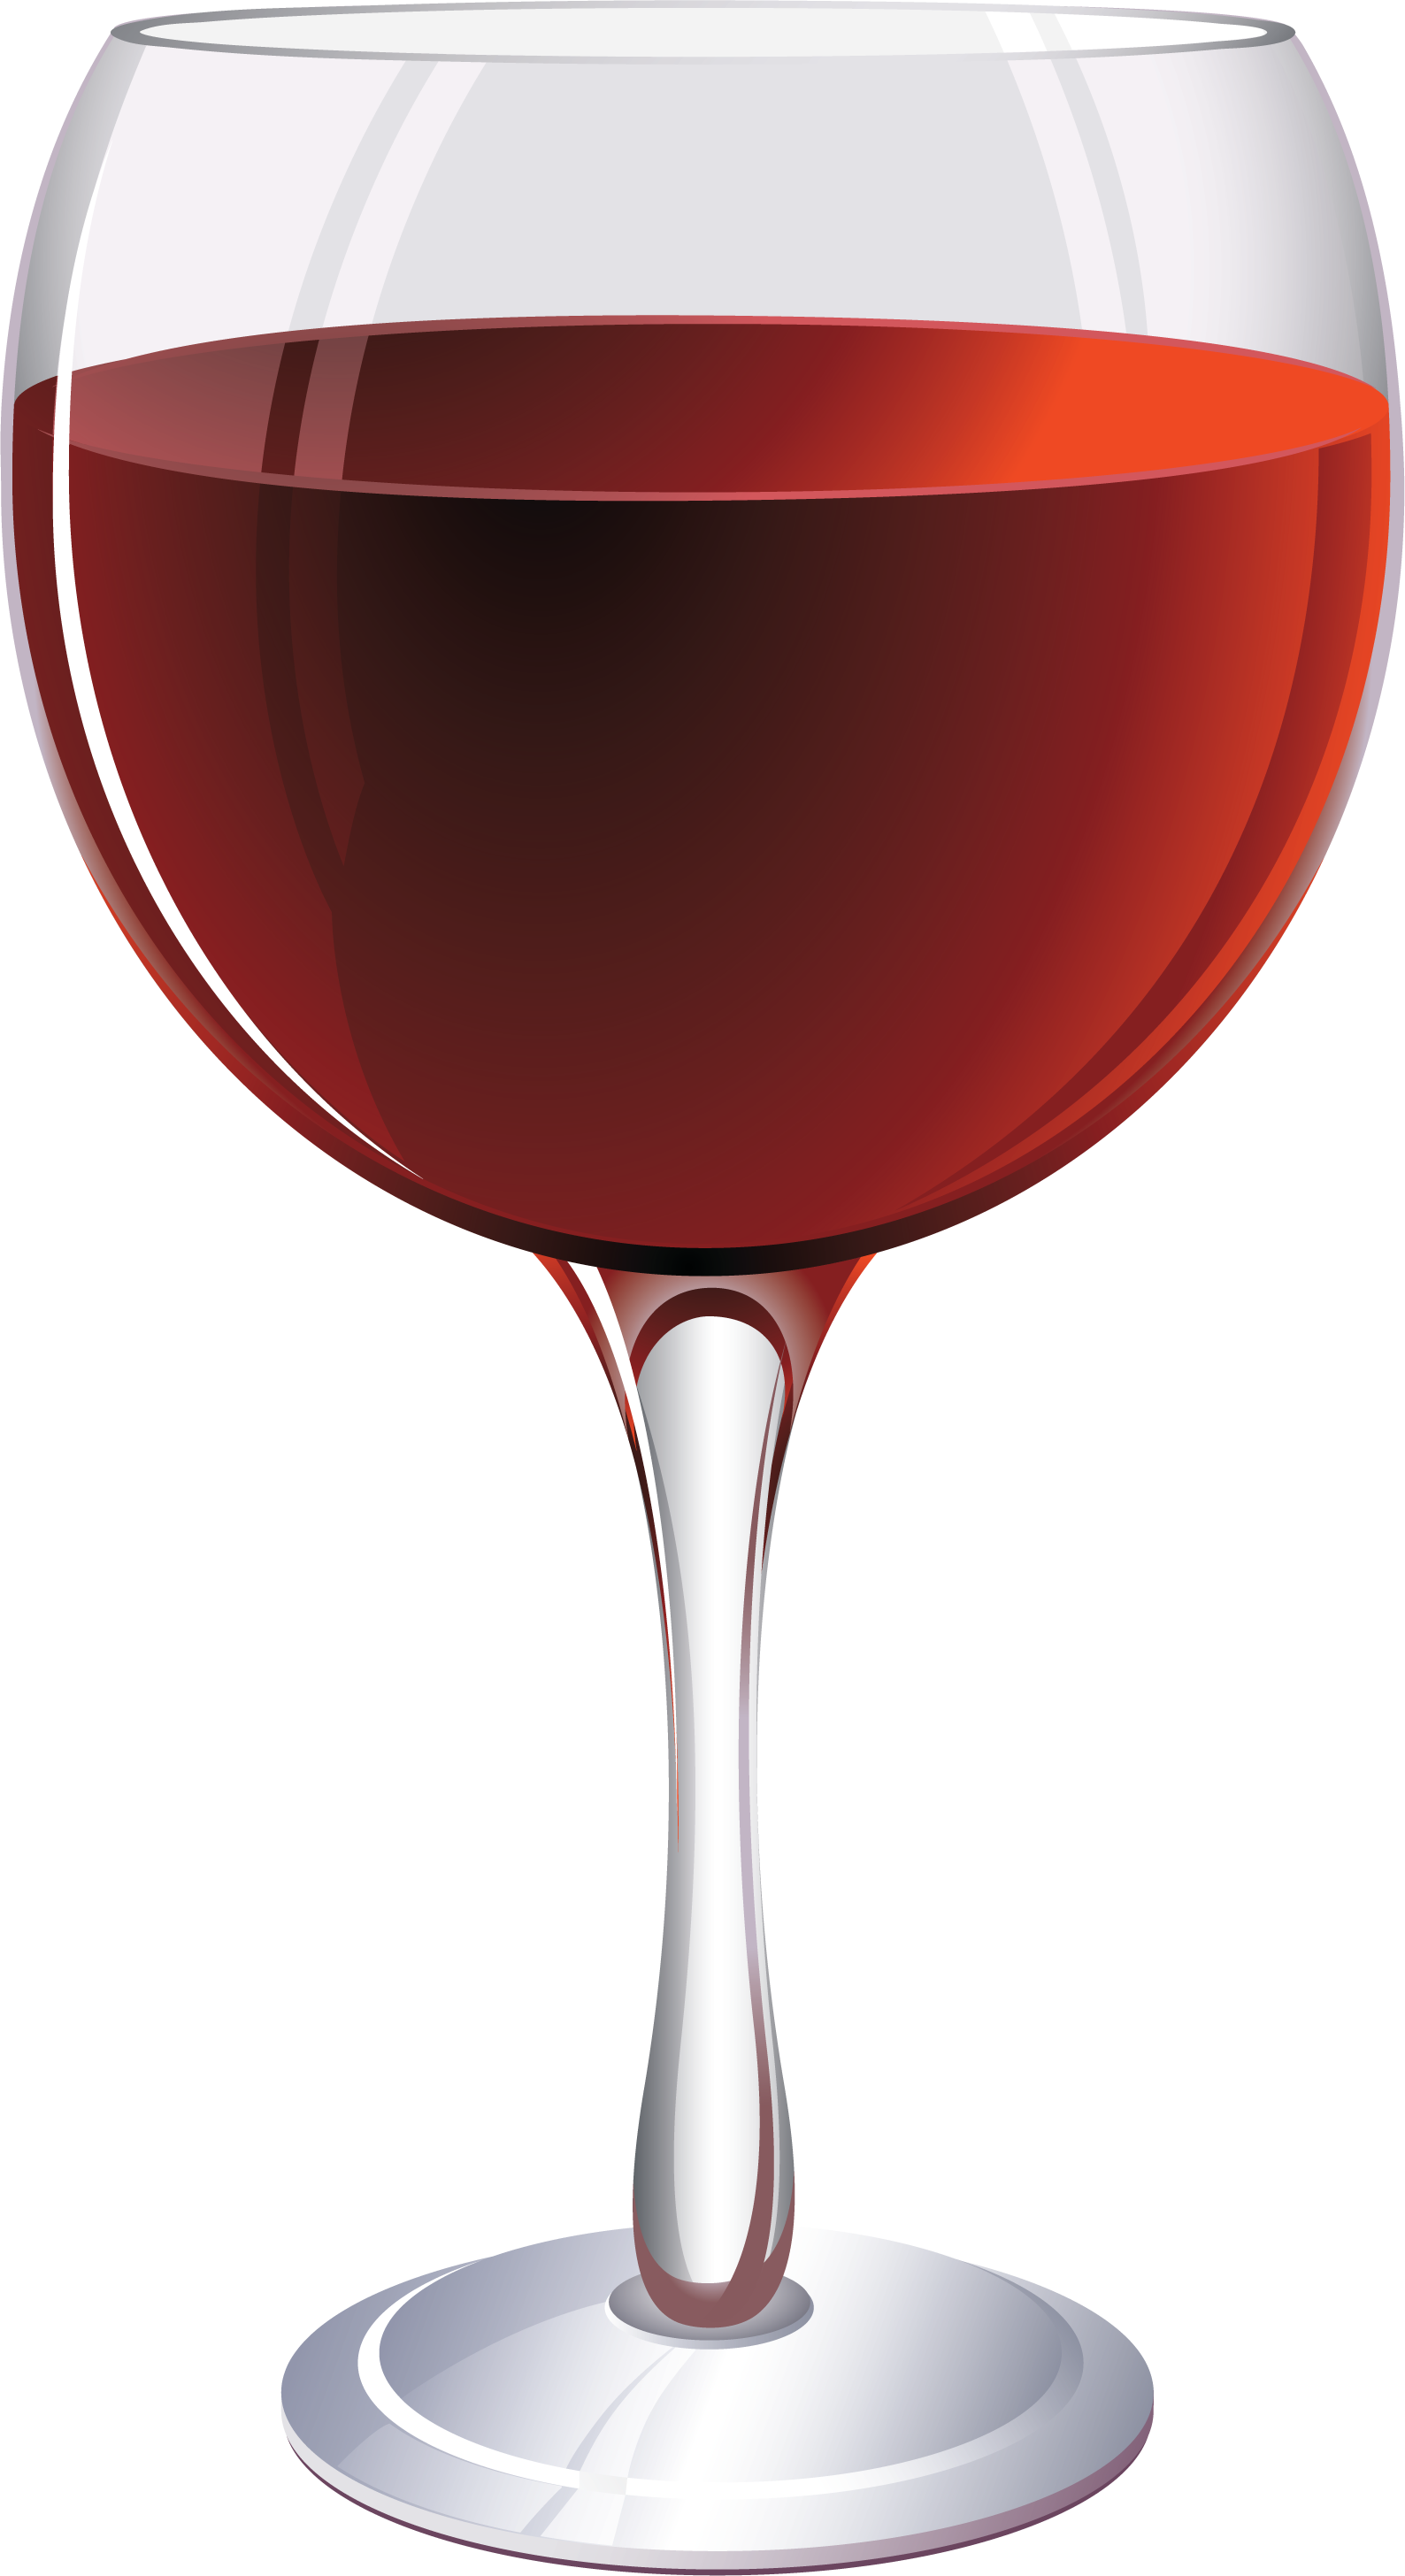 cup of wine png